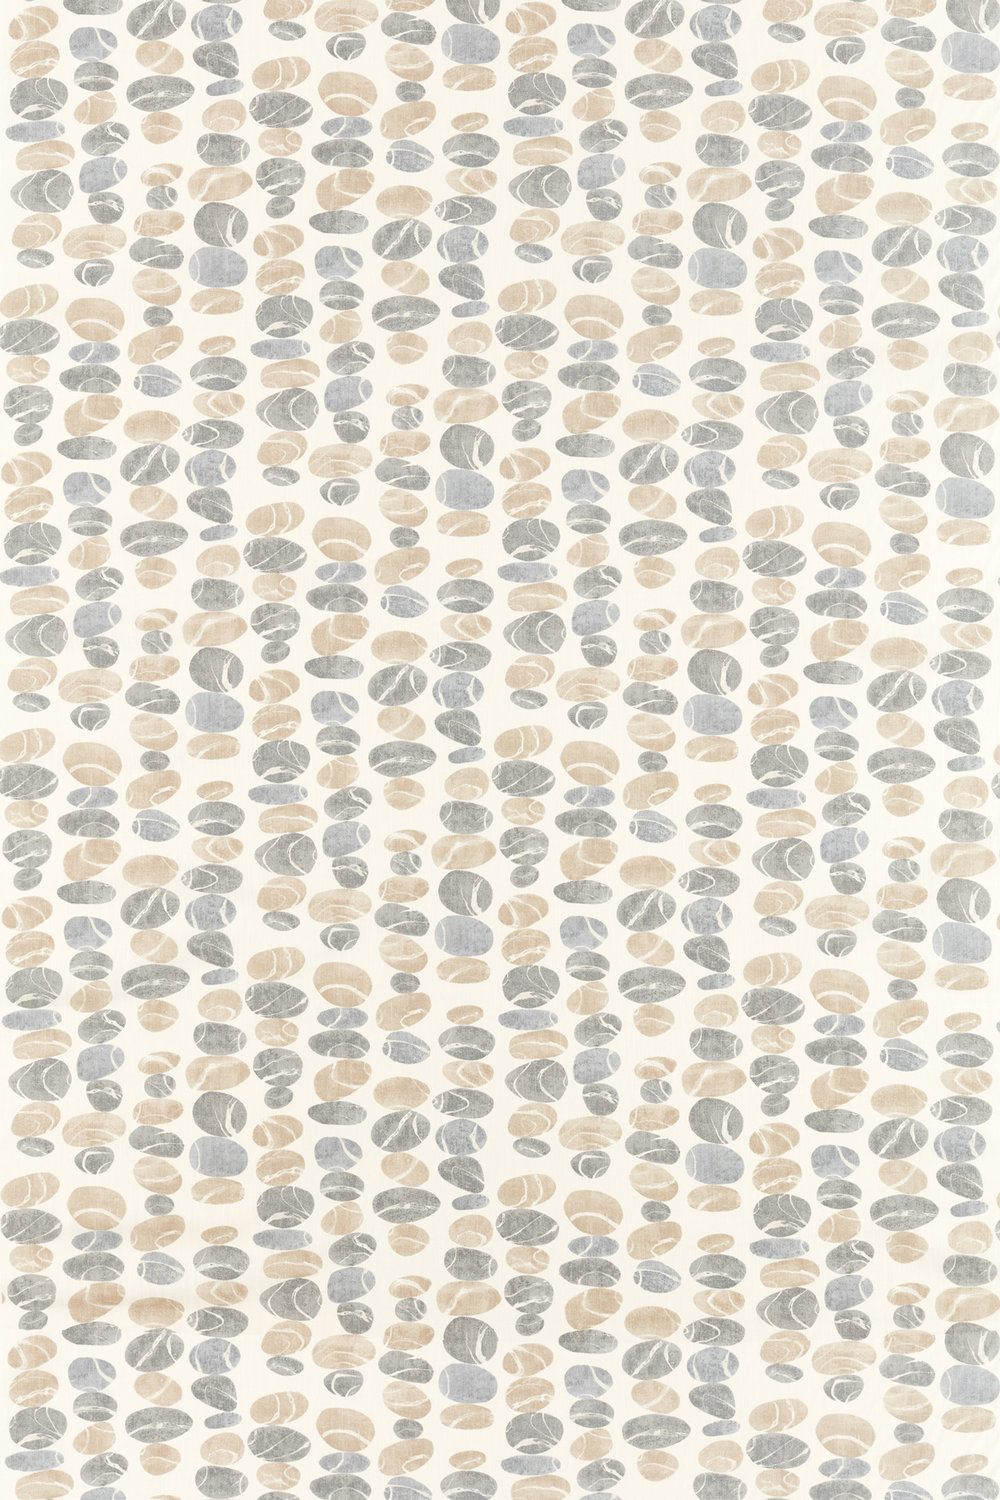 Sanderson Stacking Pebbles Driftwood/Slate Fabric - Product code: 226496